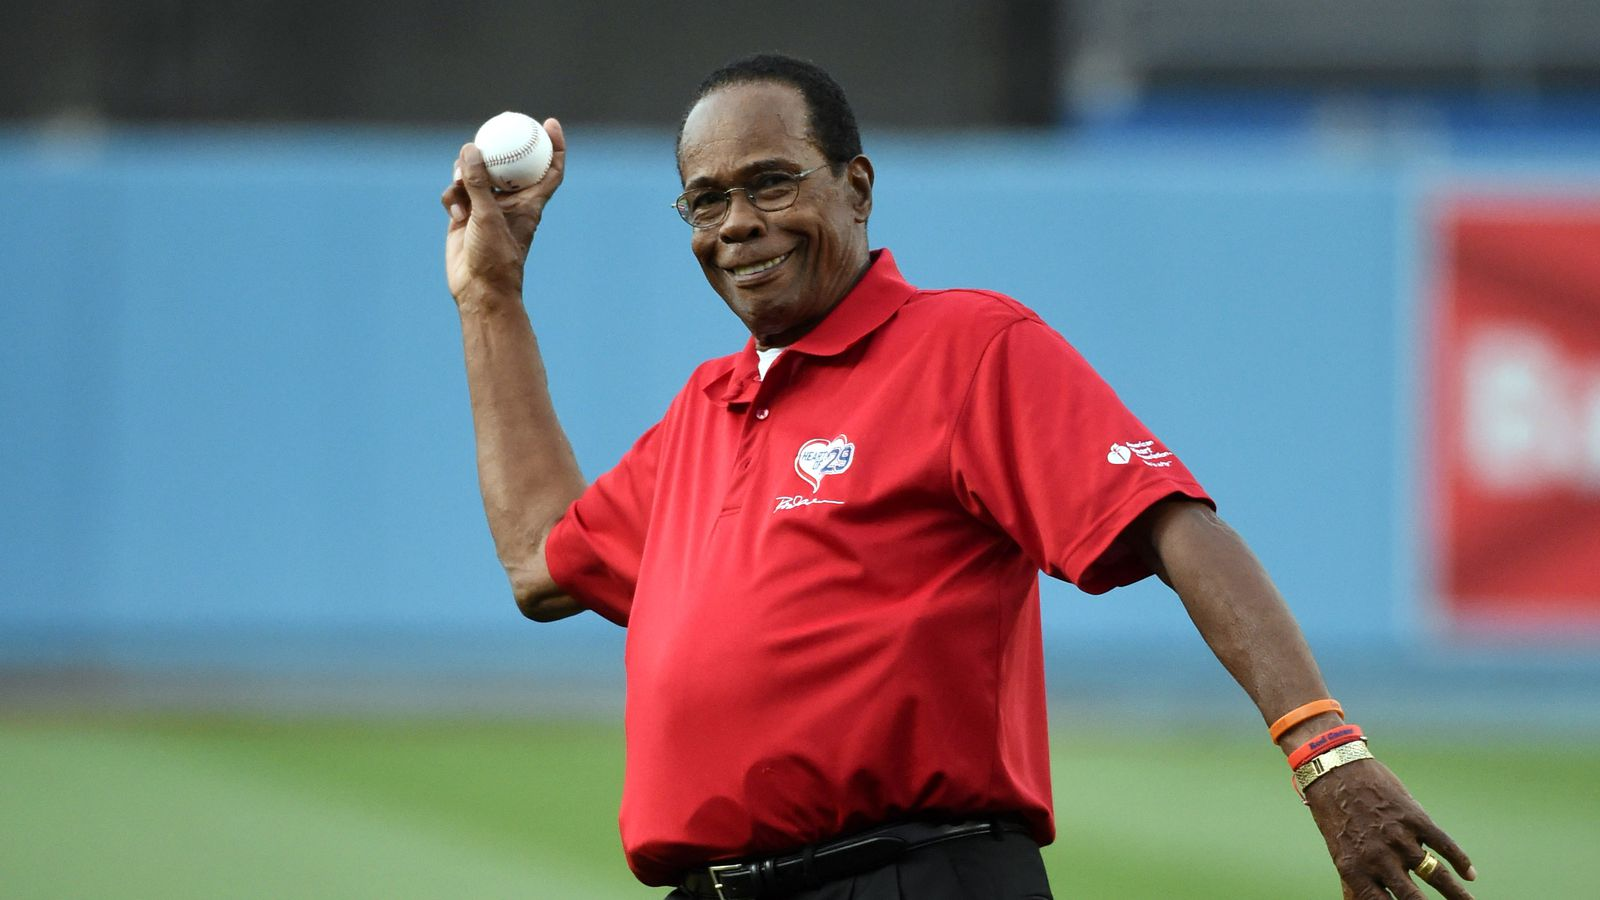 Rod Carew's first interview post-transplant surgery - Twinkie Town